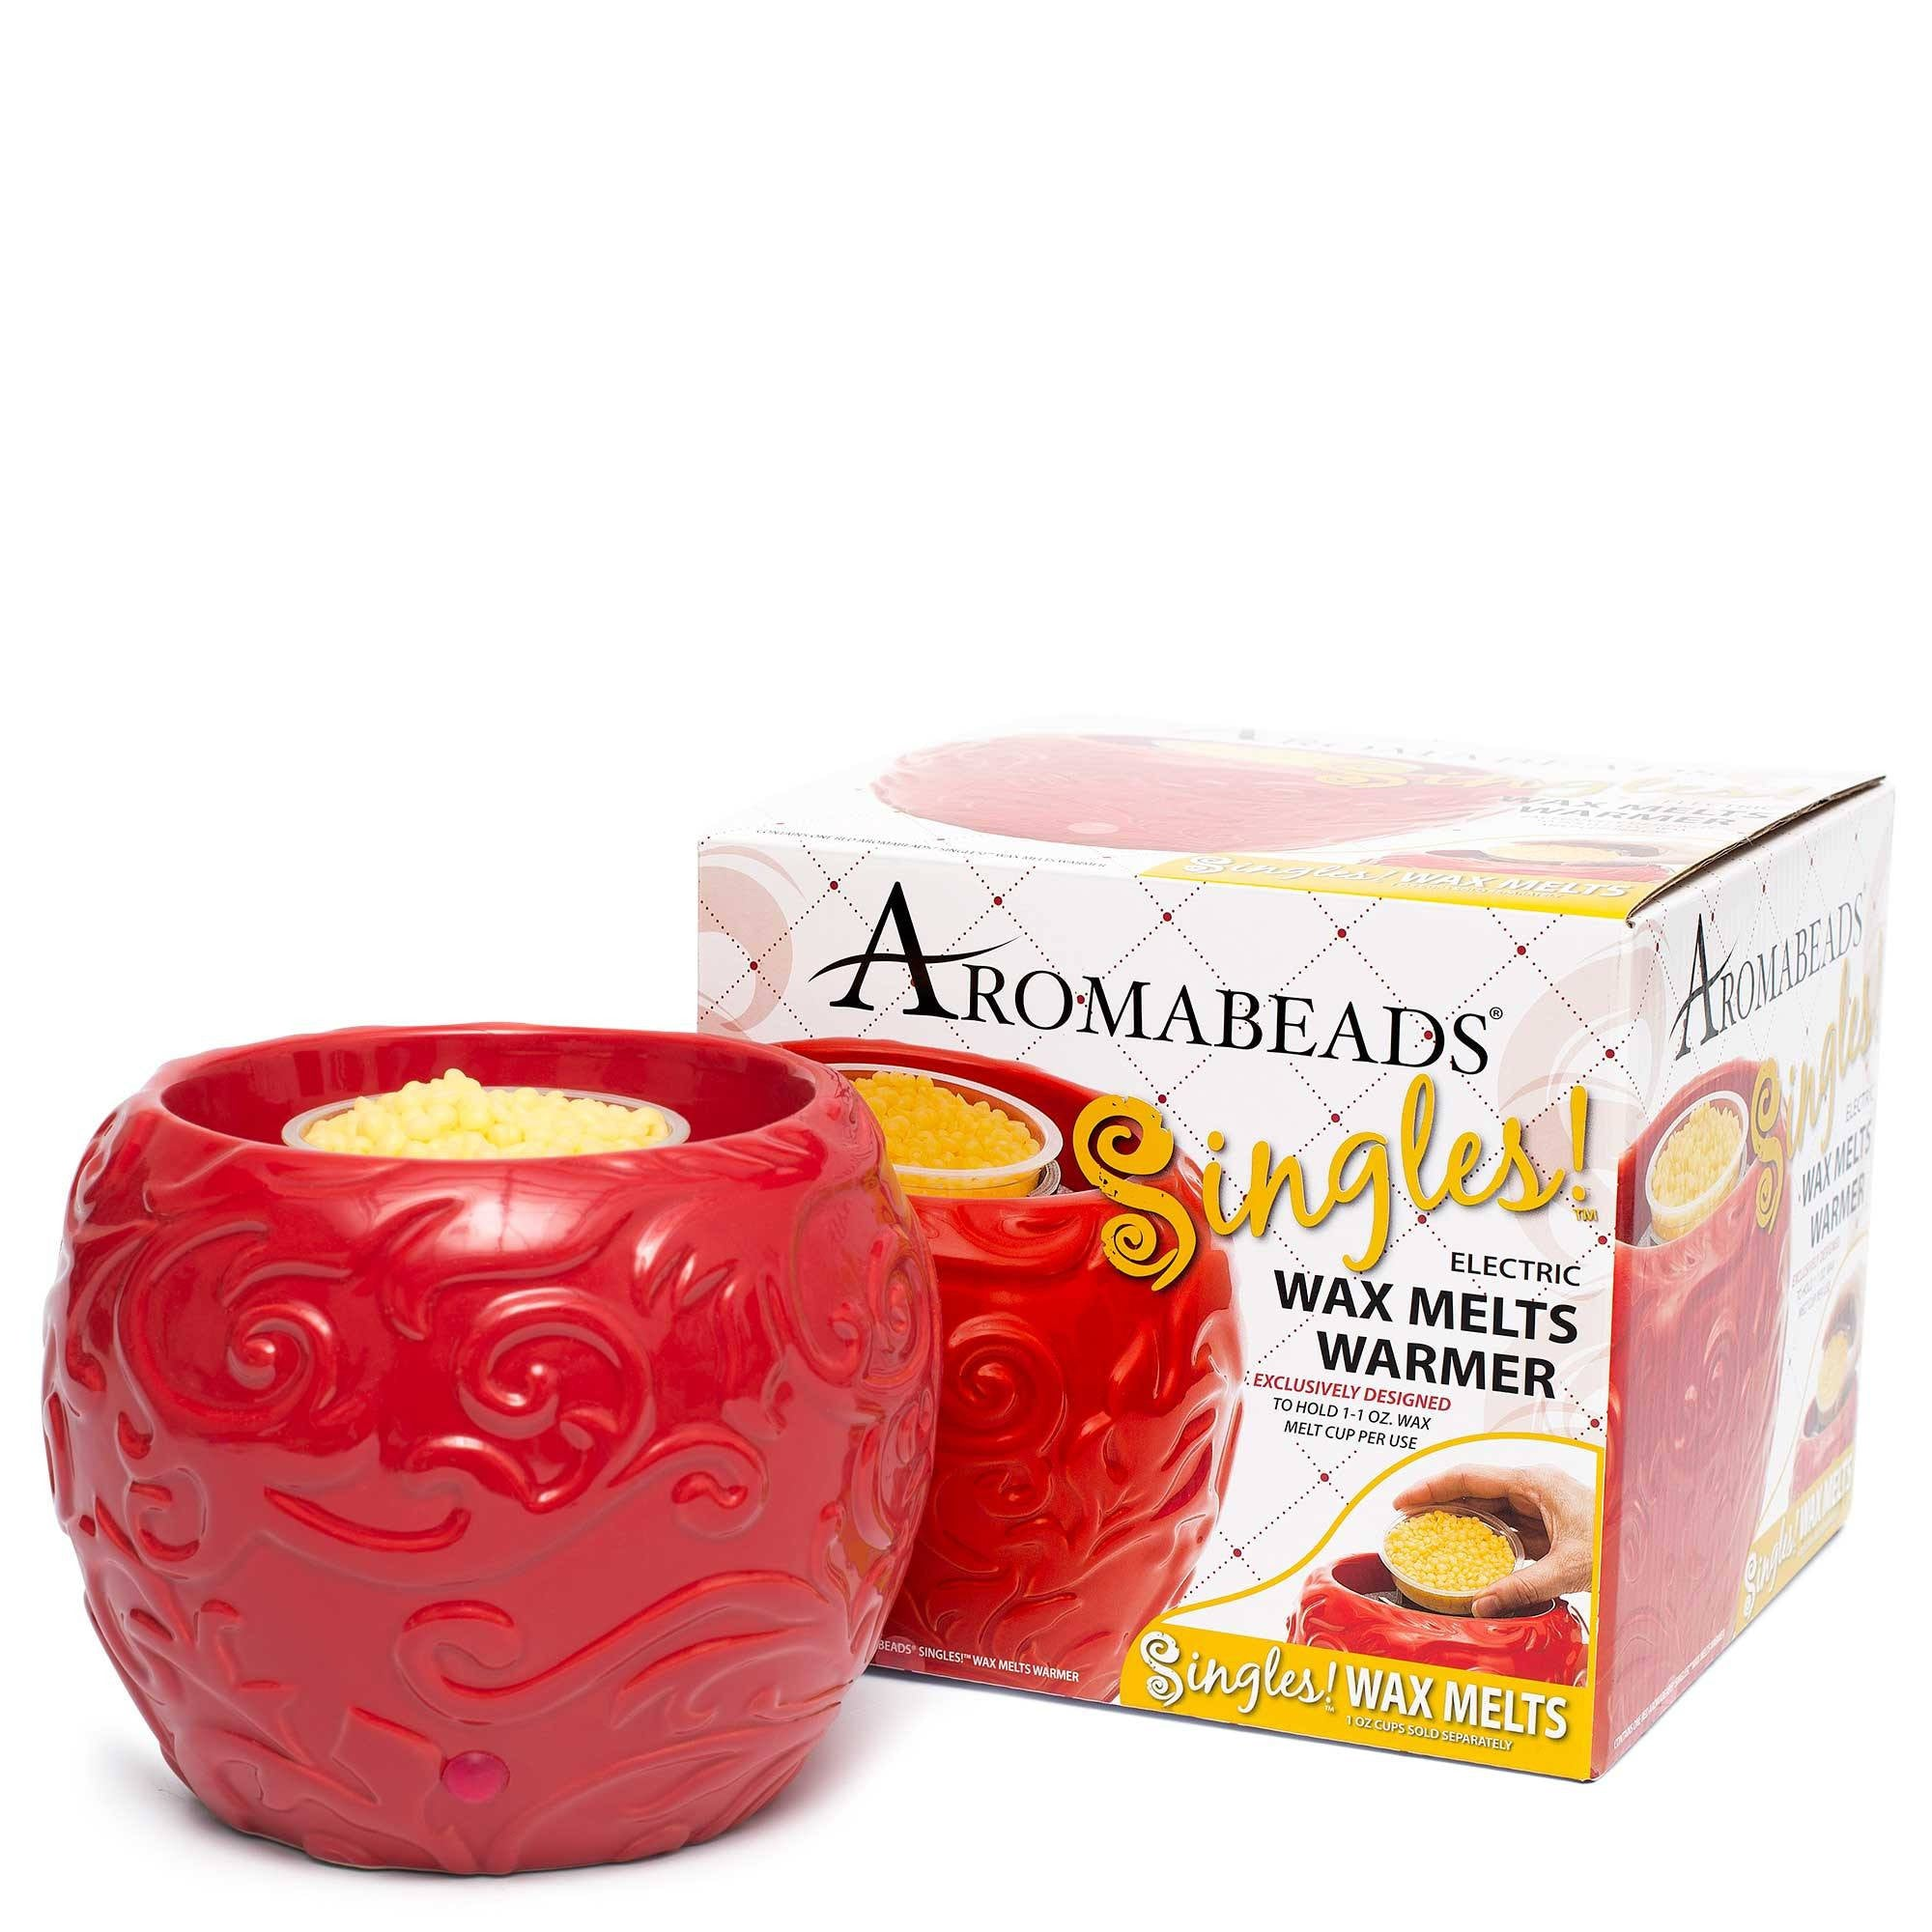 Aromabeads Singles Fresh Cotton Blossom Scented Wax Melts Melts Candlemart.com $ 1.49